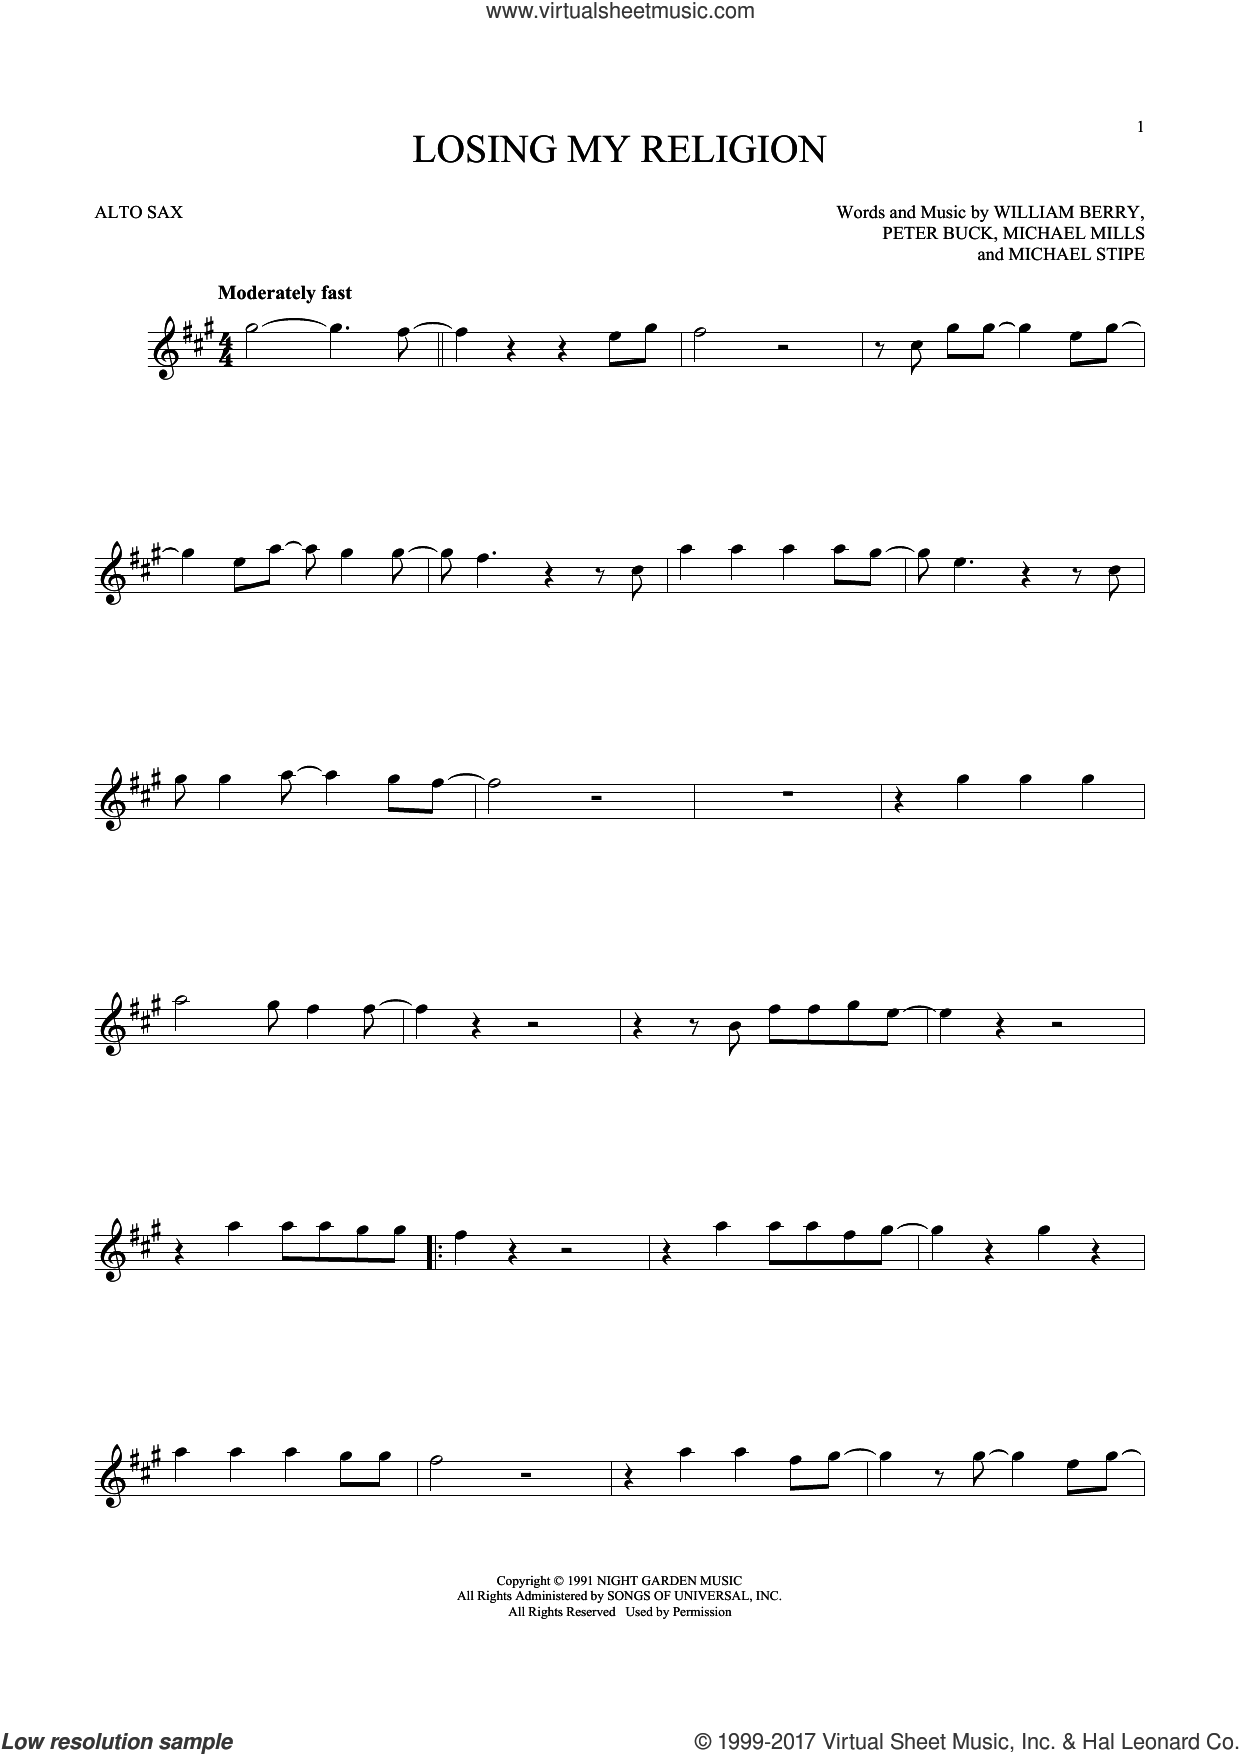 Losing My Religion sheet music for alto saxophone solo by R.E.M., Michael Stipe, Mike Mills, Peter Buck and William Berry, intermediate skill level